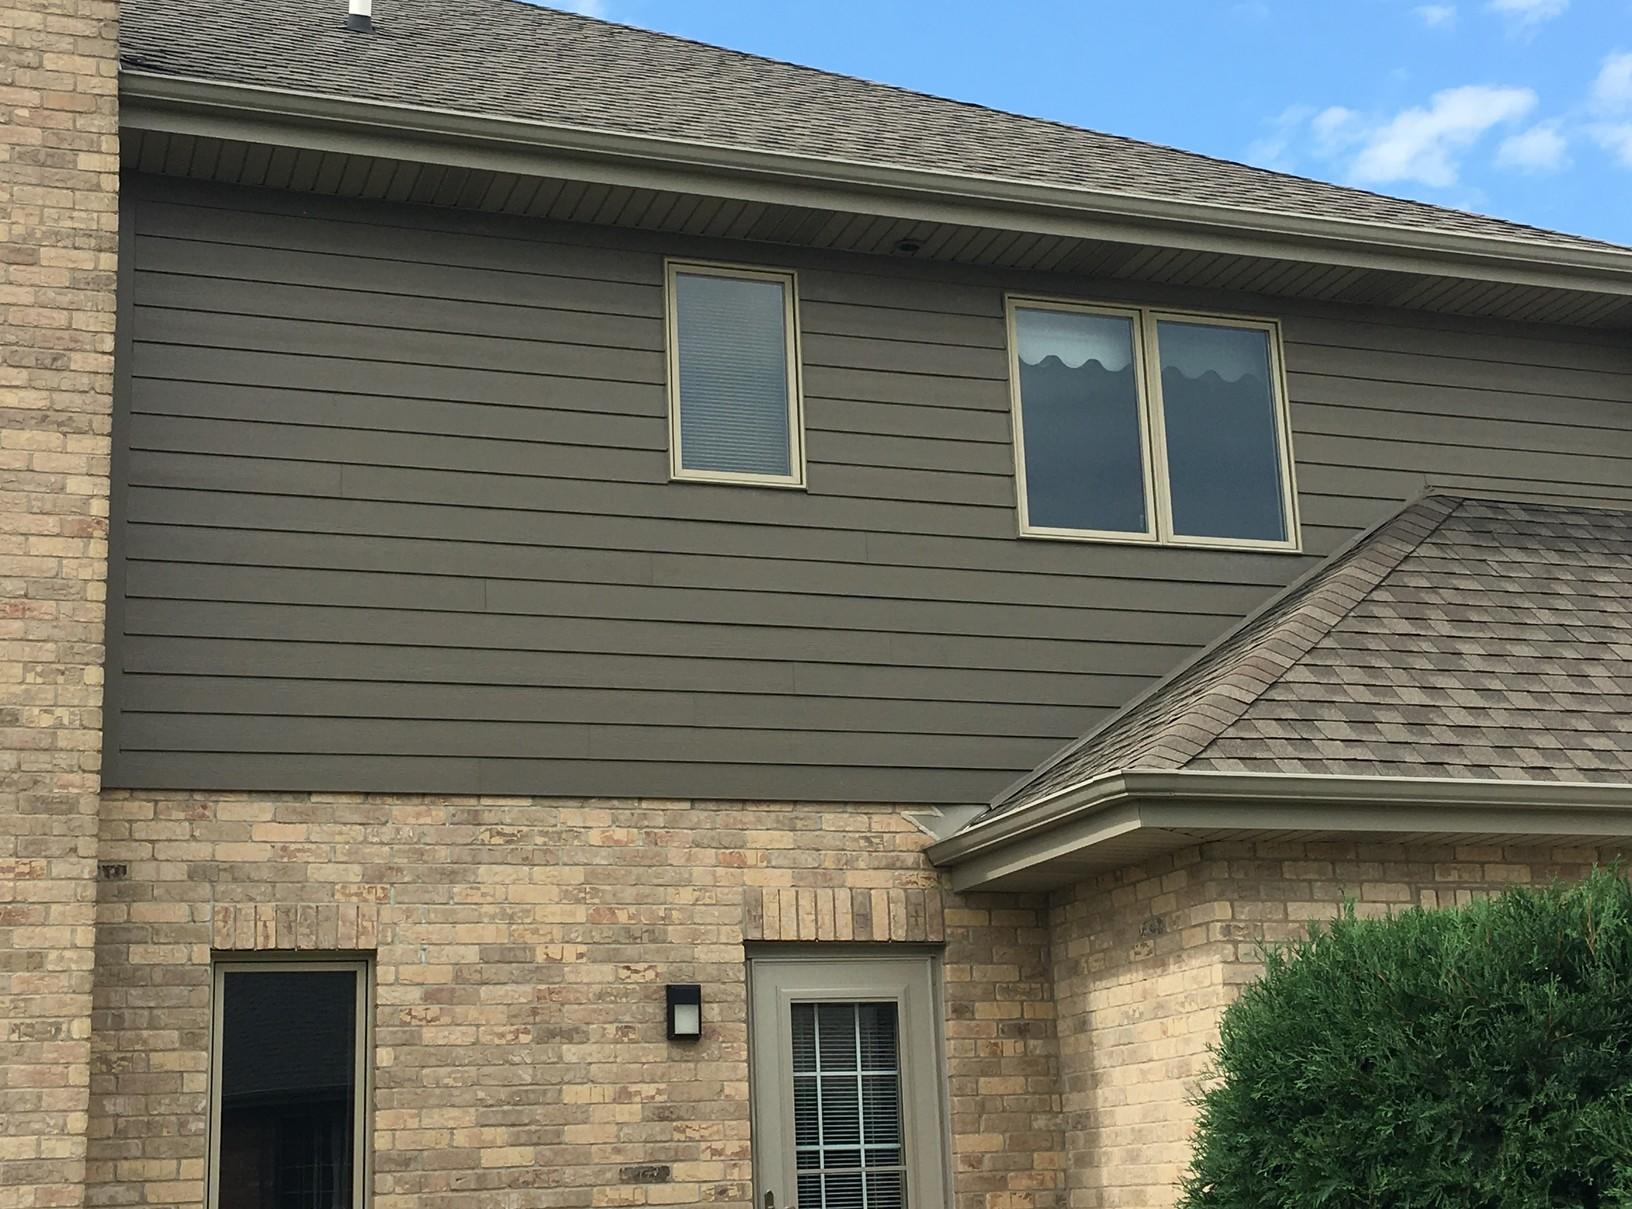 James Hardie Fiber Cement Siding Installation in Mokena, IL - After Photo